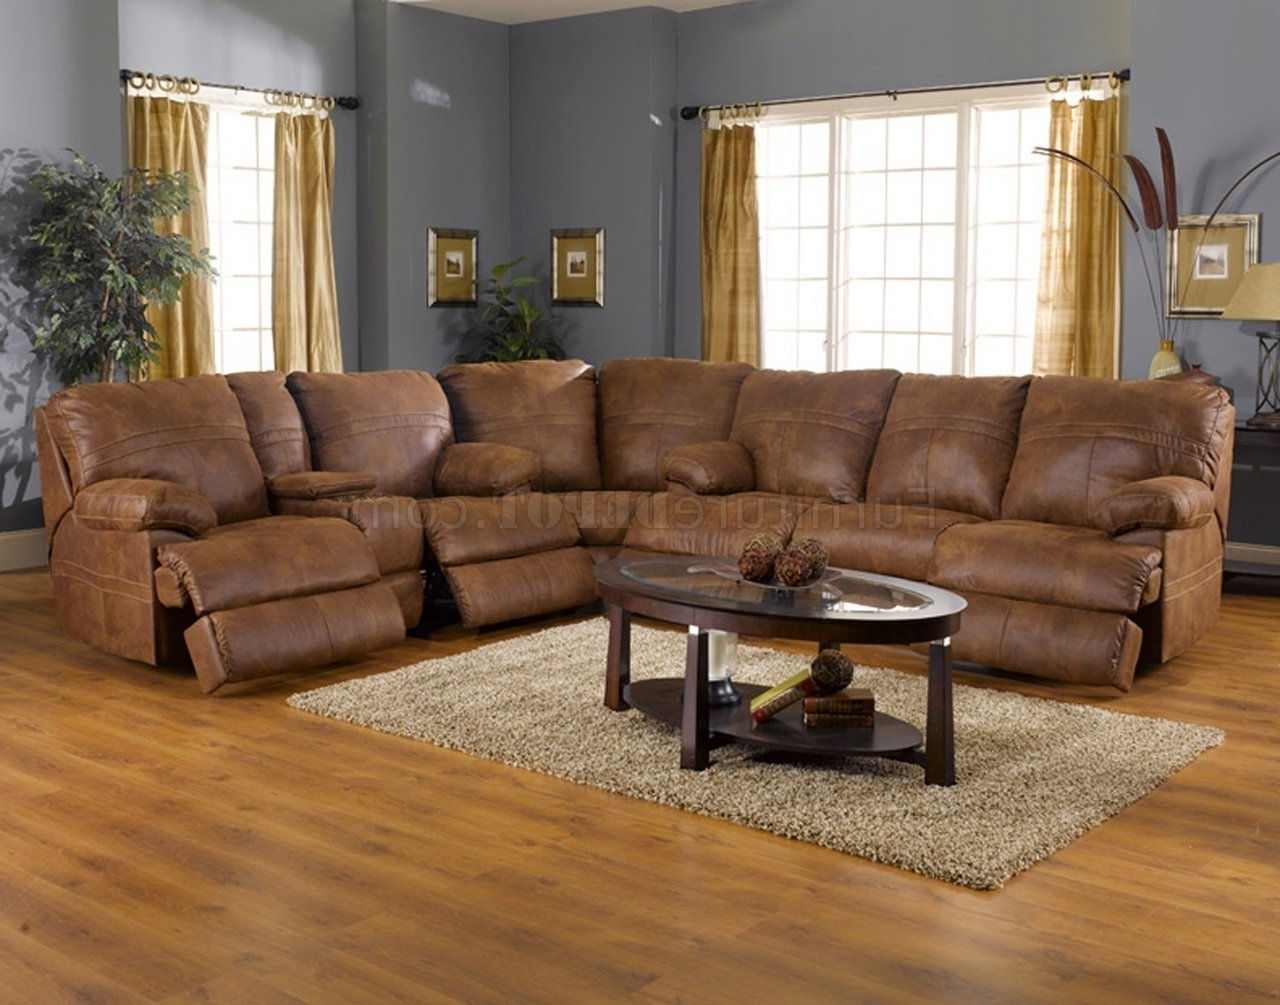 Rich Tanner Faux Leather Fabric Ranger Modern Sectional Sofa For Well Known Faux Leather Sectional Sofas (View 16 of 20)